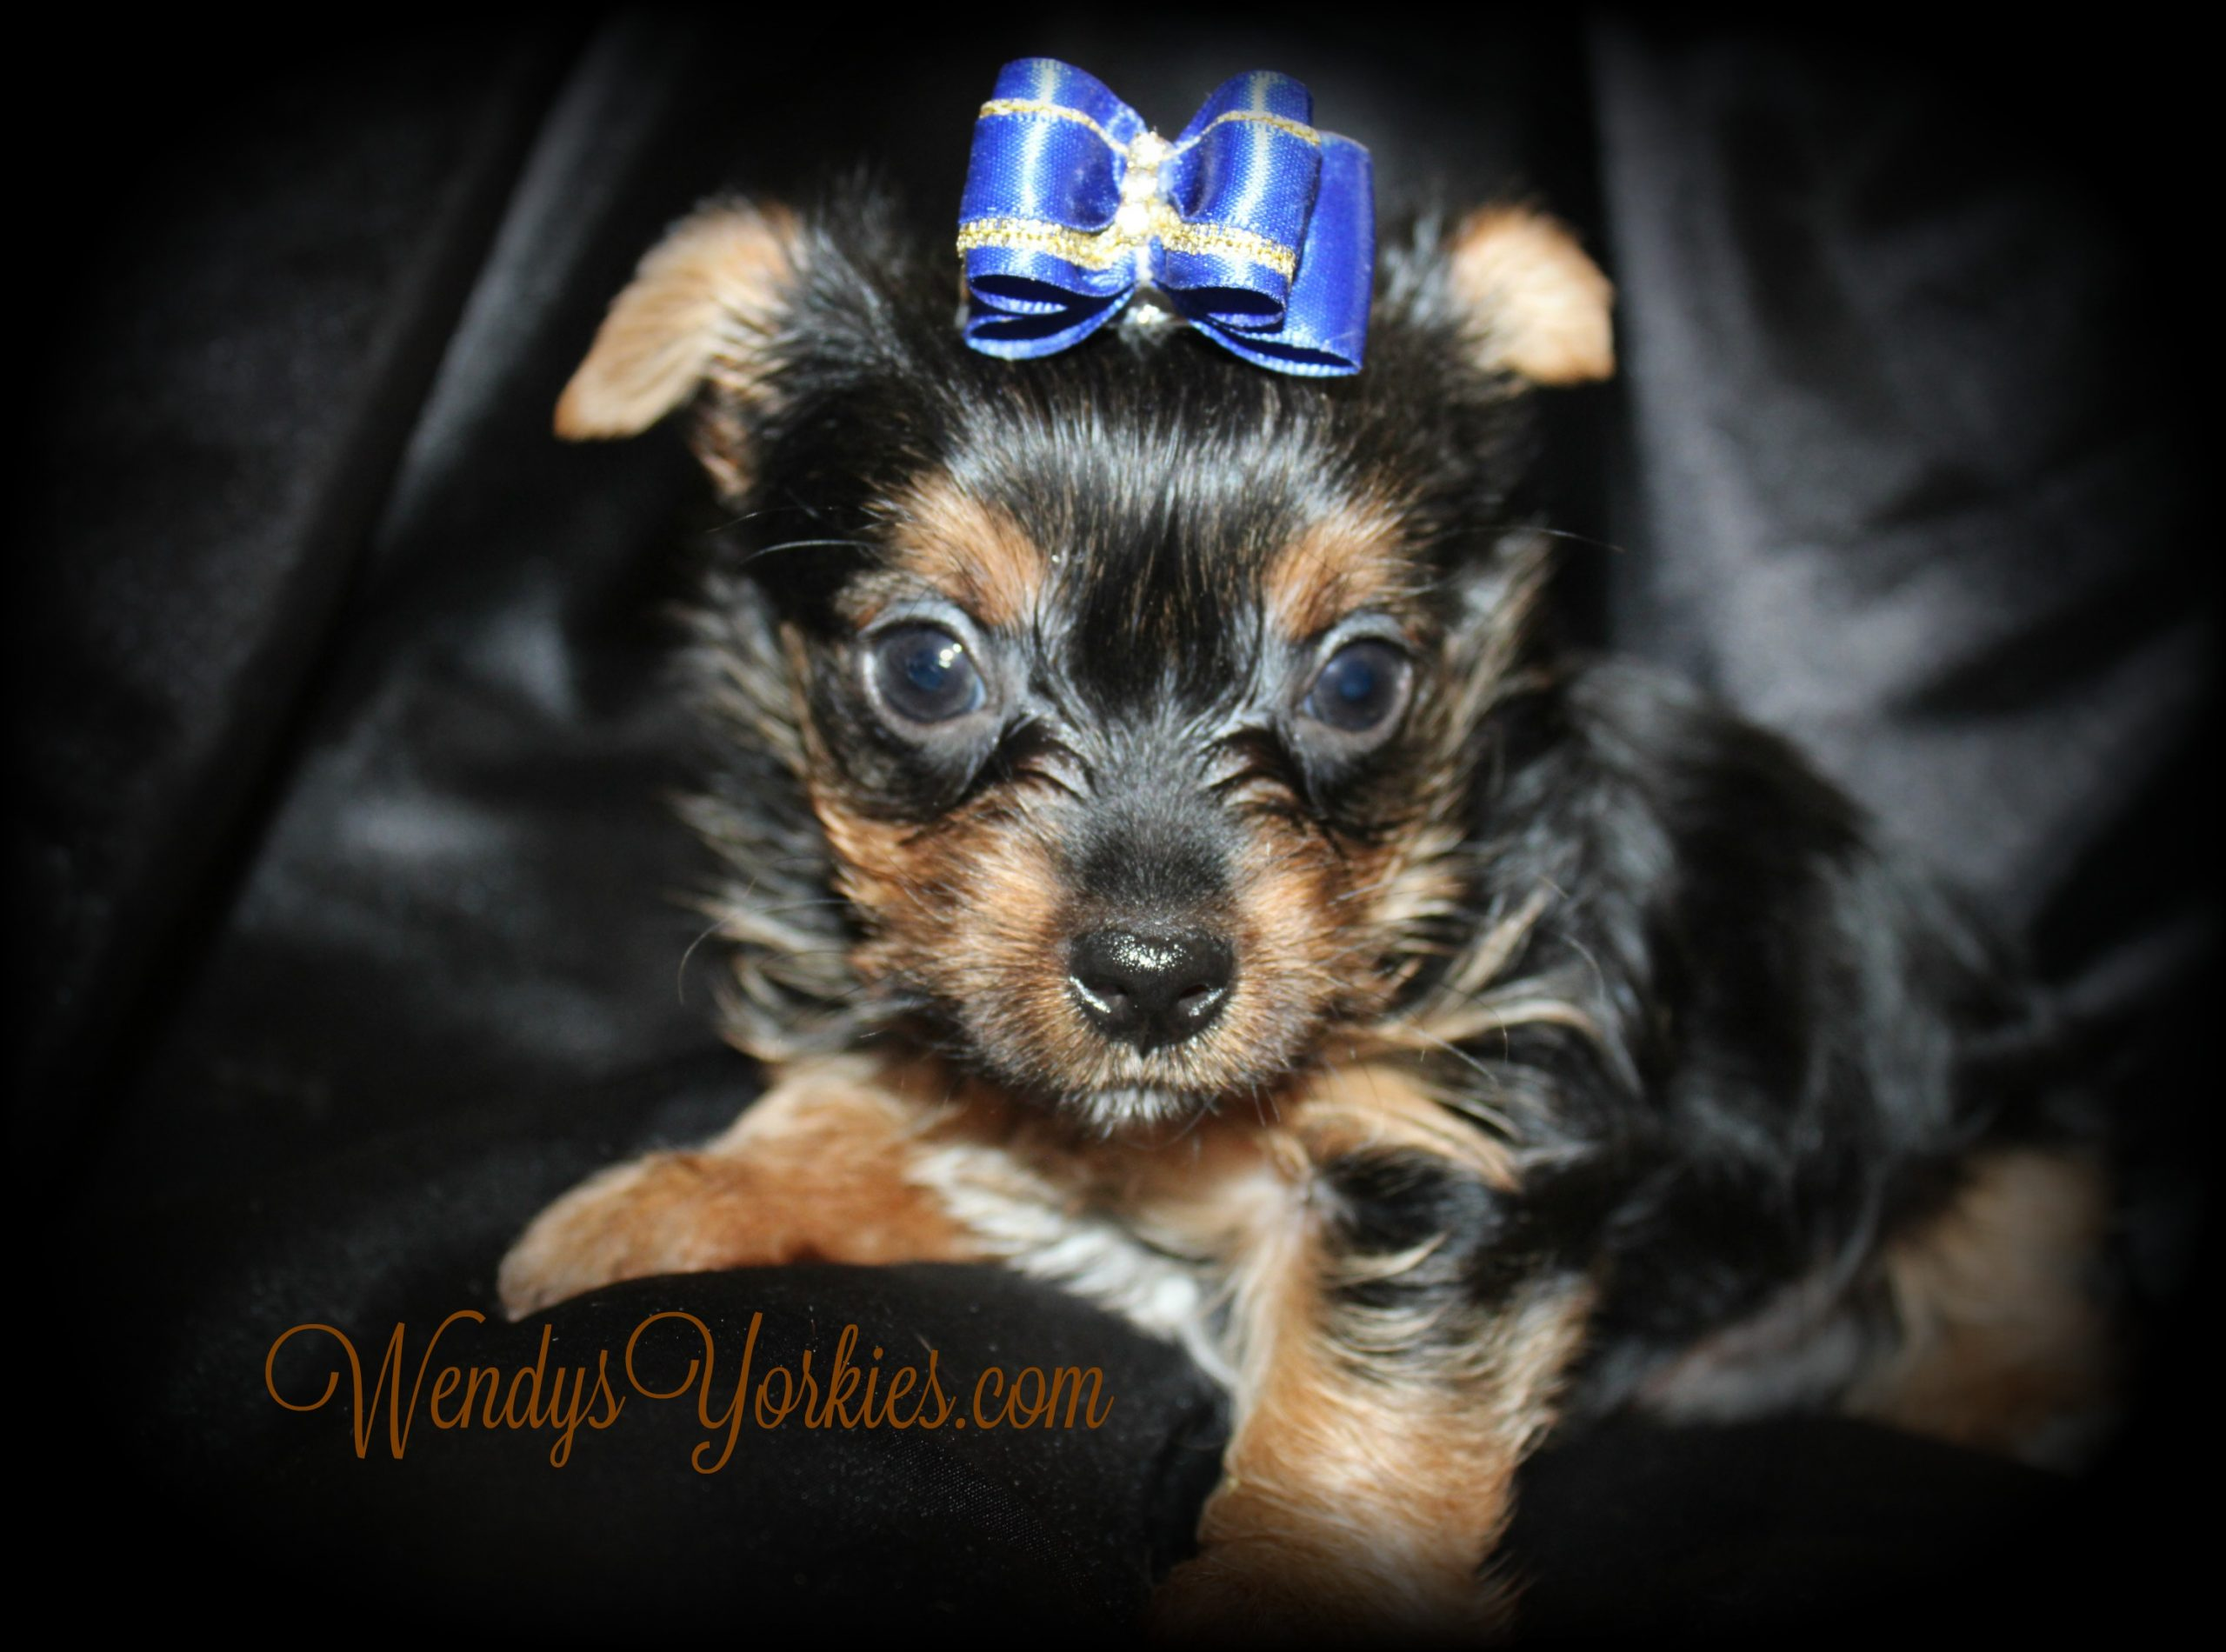 Yorkie puppy for sale in Texas, Anna m1, WendysYorkies.com